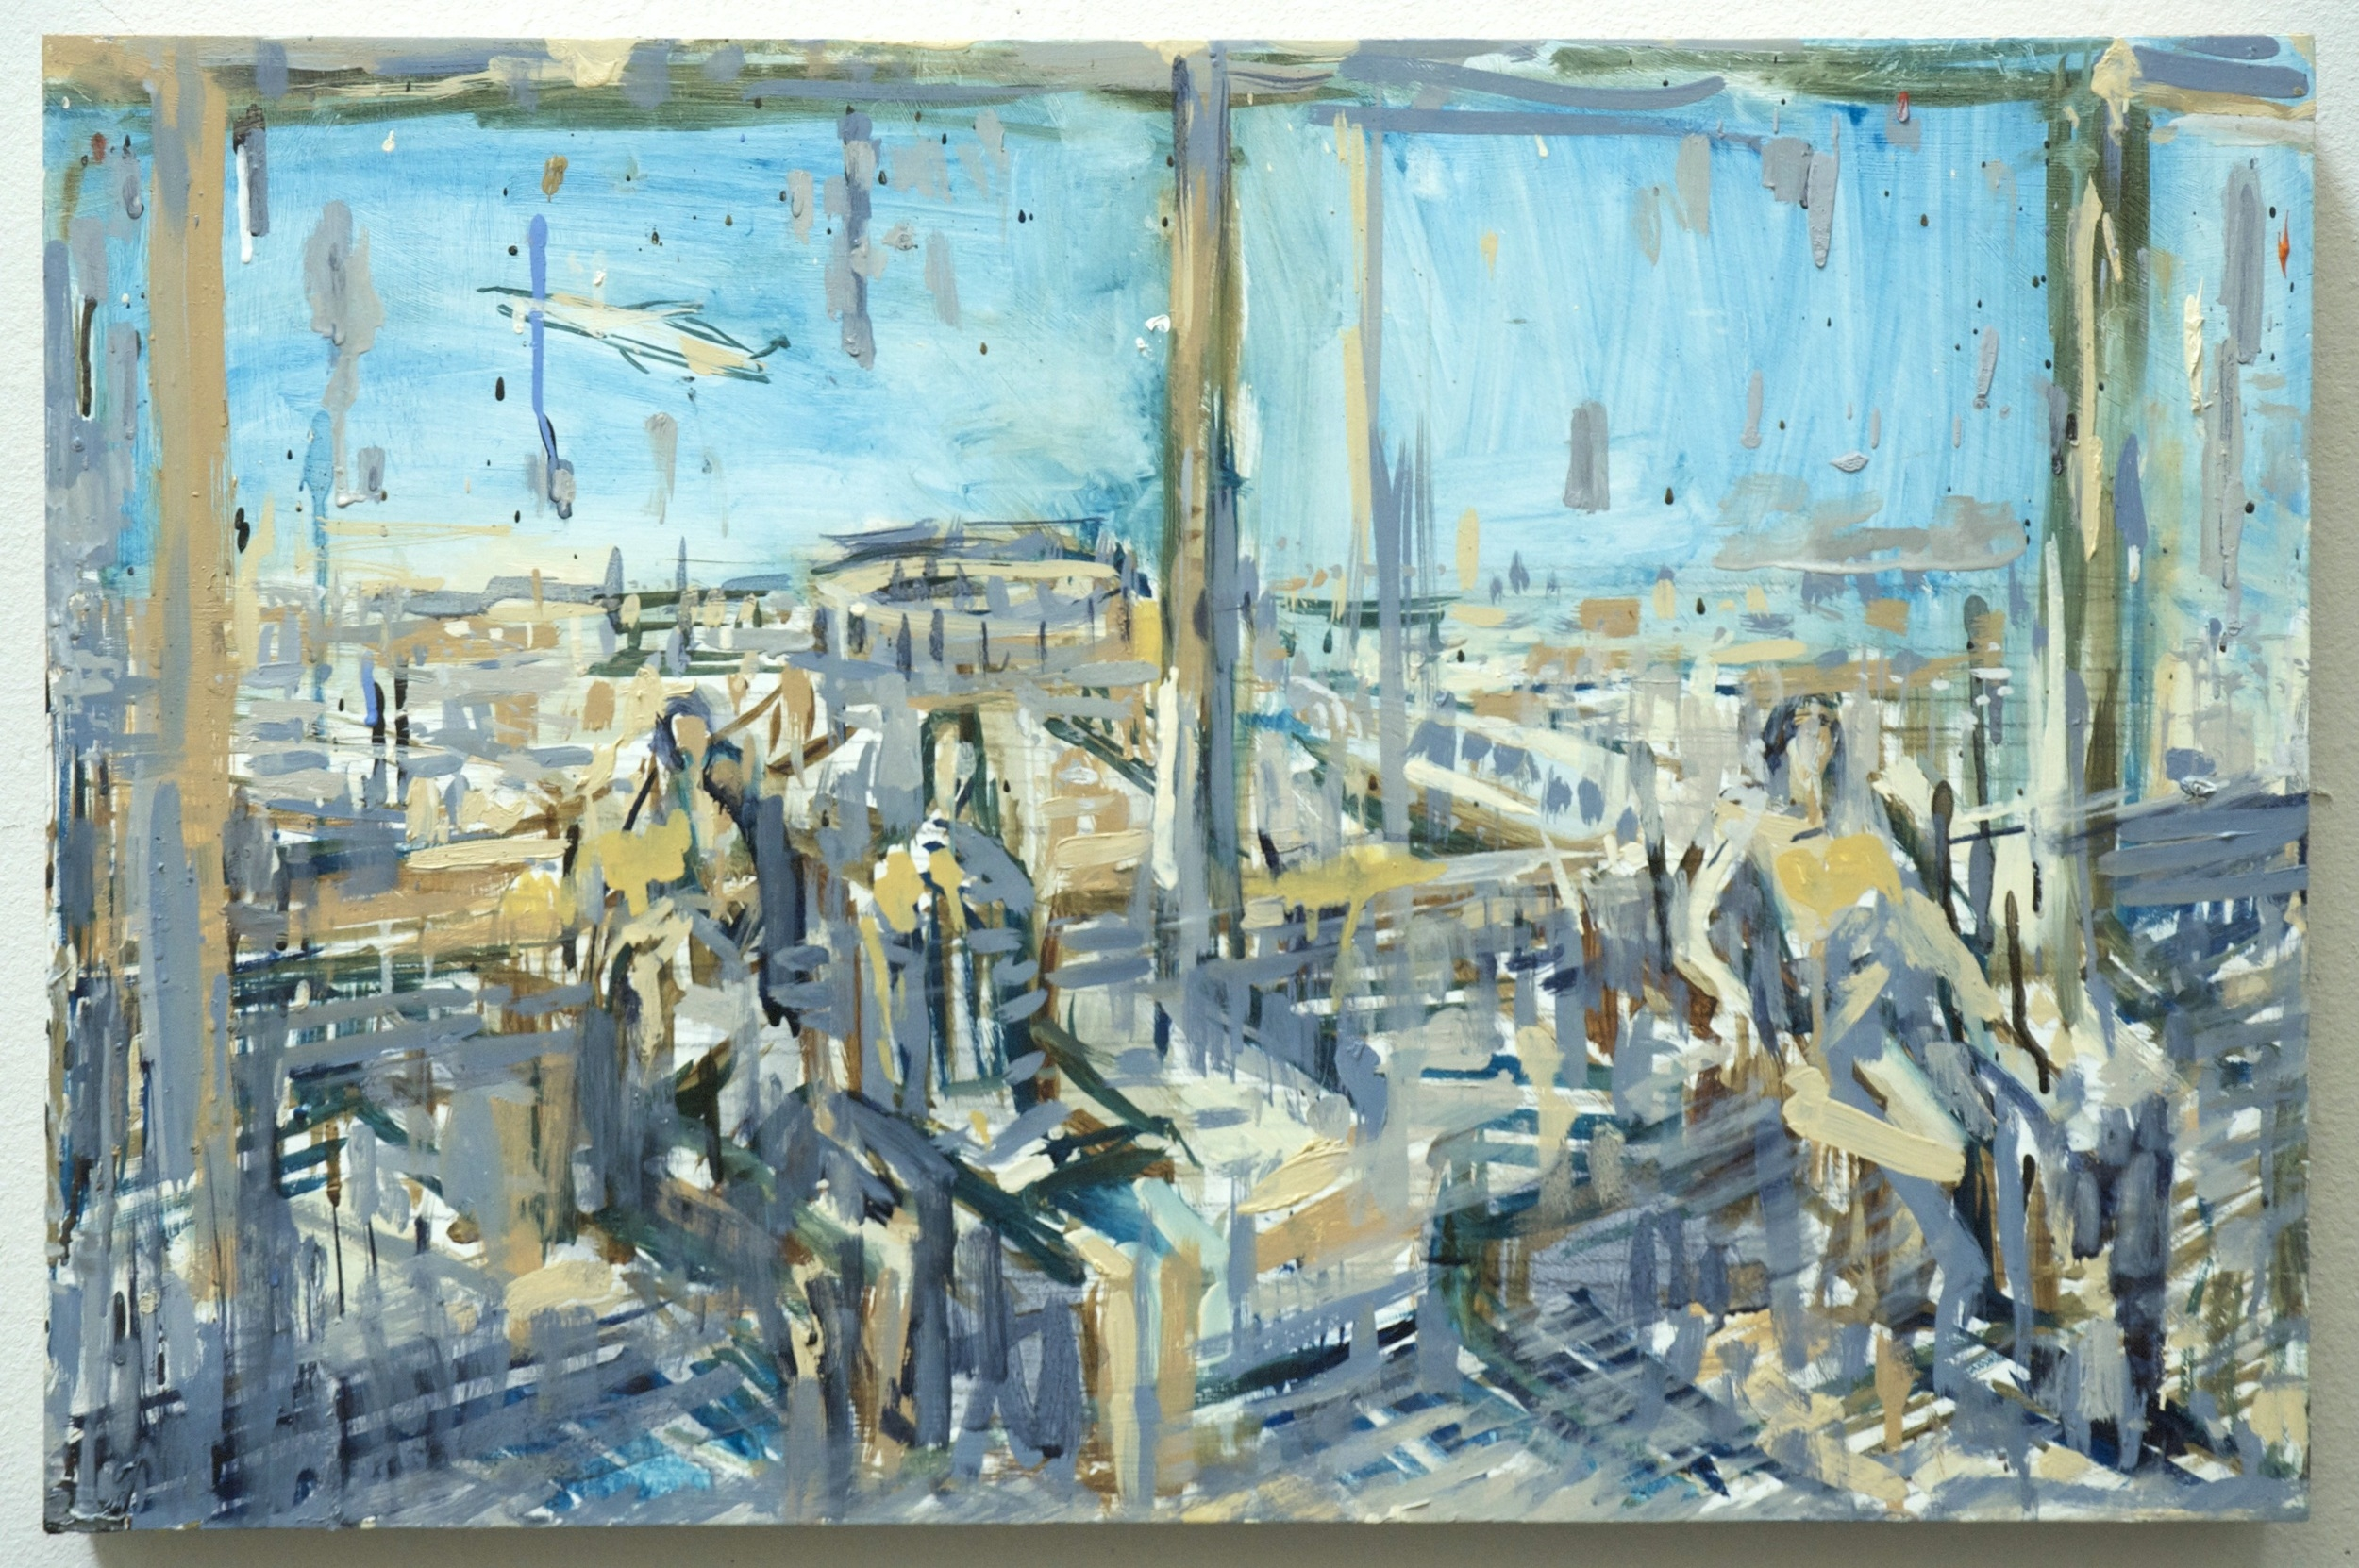 Waiting in the Rain in the JFK Airtrain , 2014, oil on panel, 15.75x24 inches